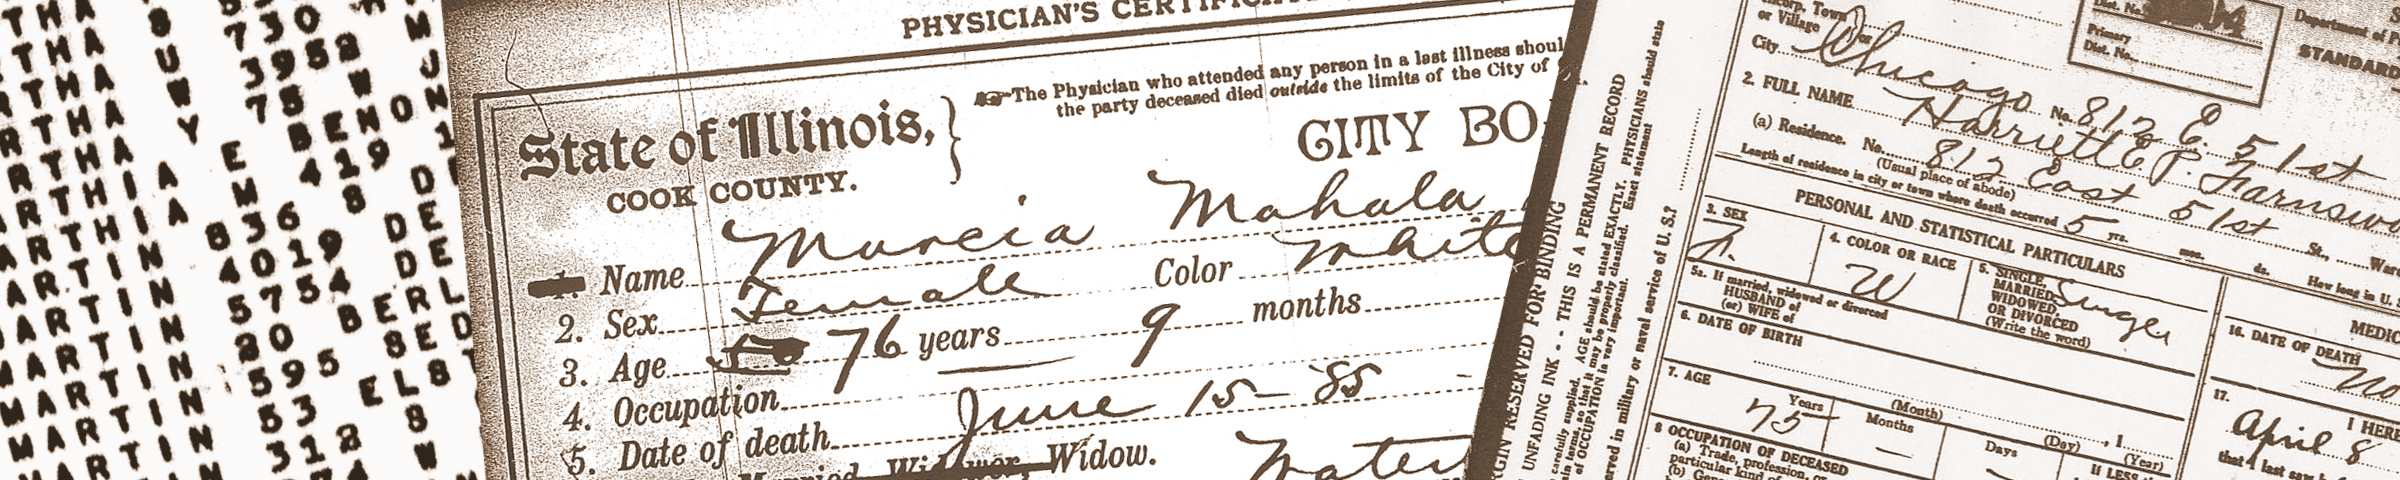 Chicagogenealogy how to find chicago death certificates how to find chicago death certificates 1betcityfo Image collections